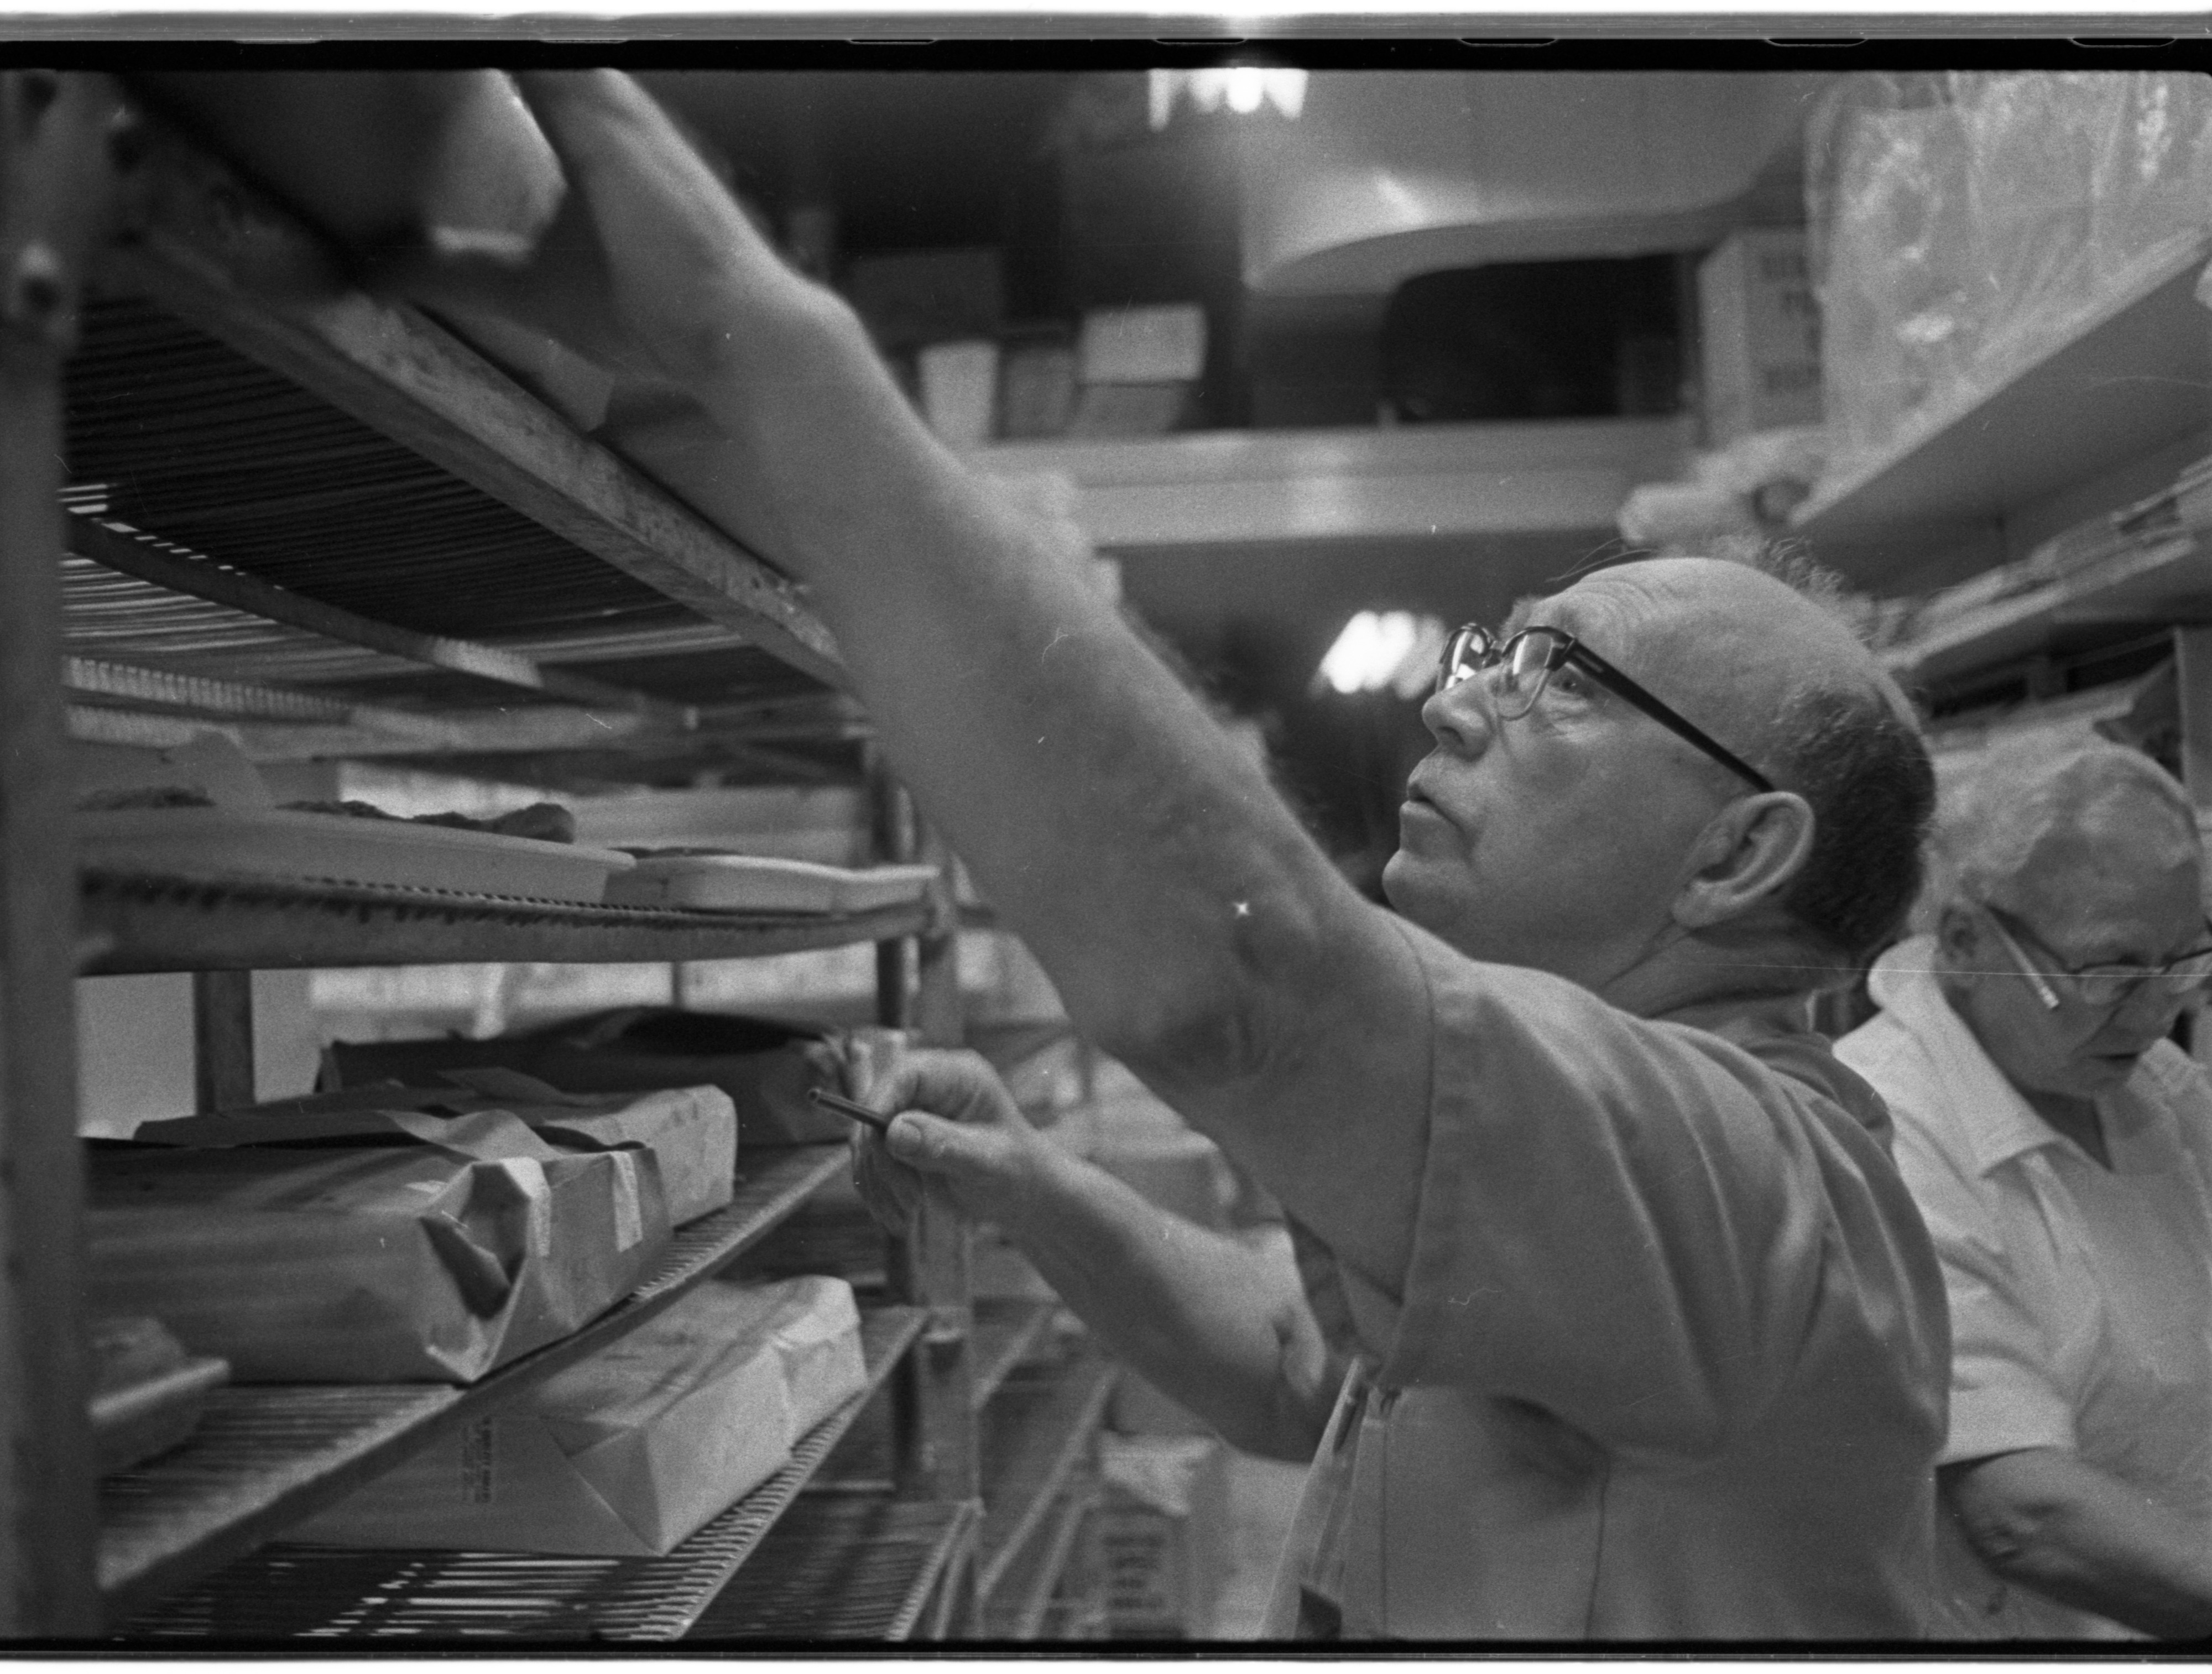 Bob Dickson Fills The Orders at Quality Bakery, April 1974 image